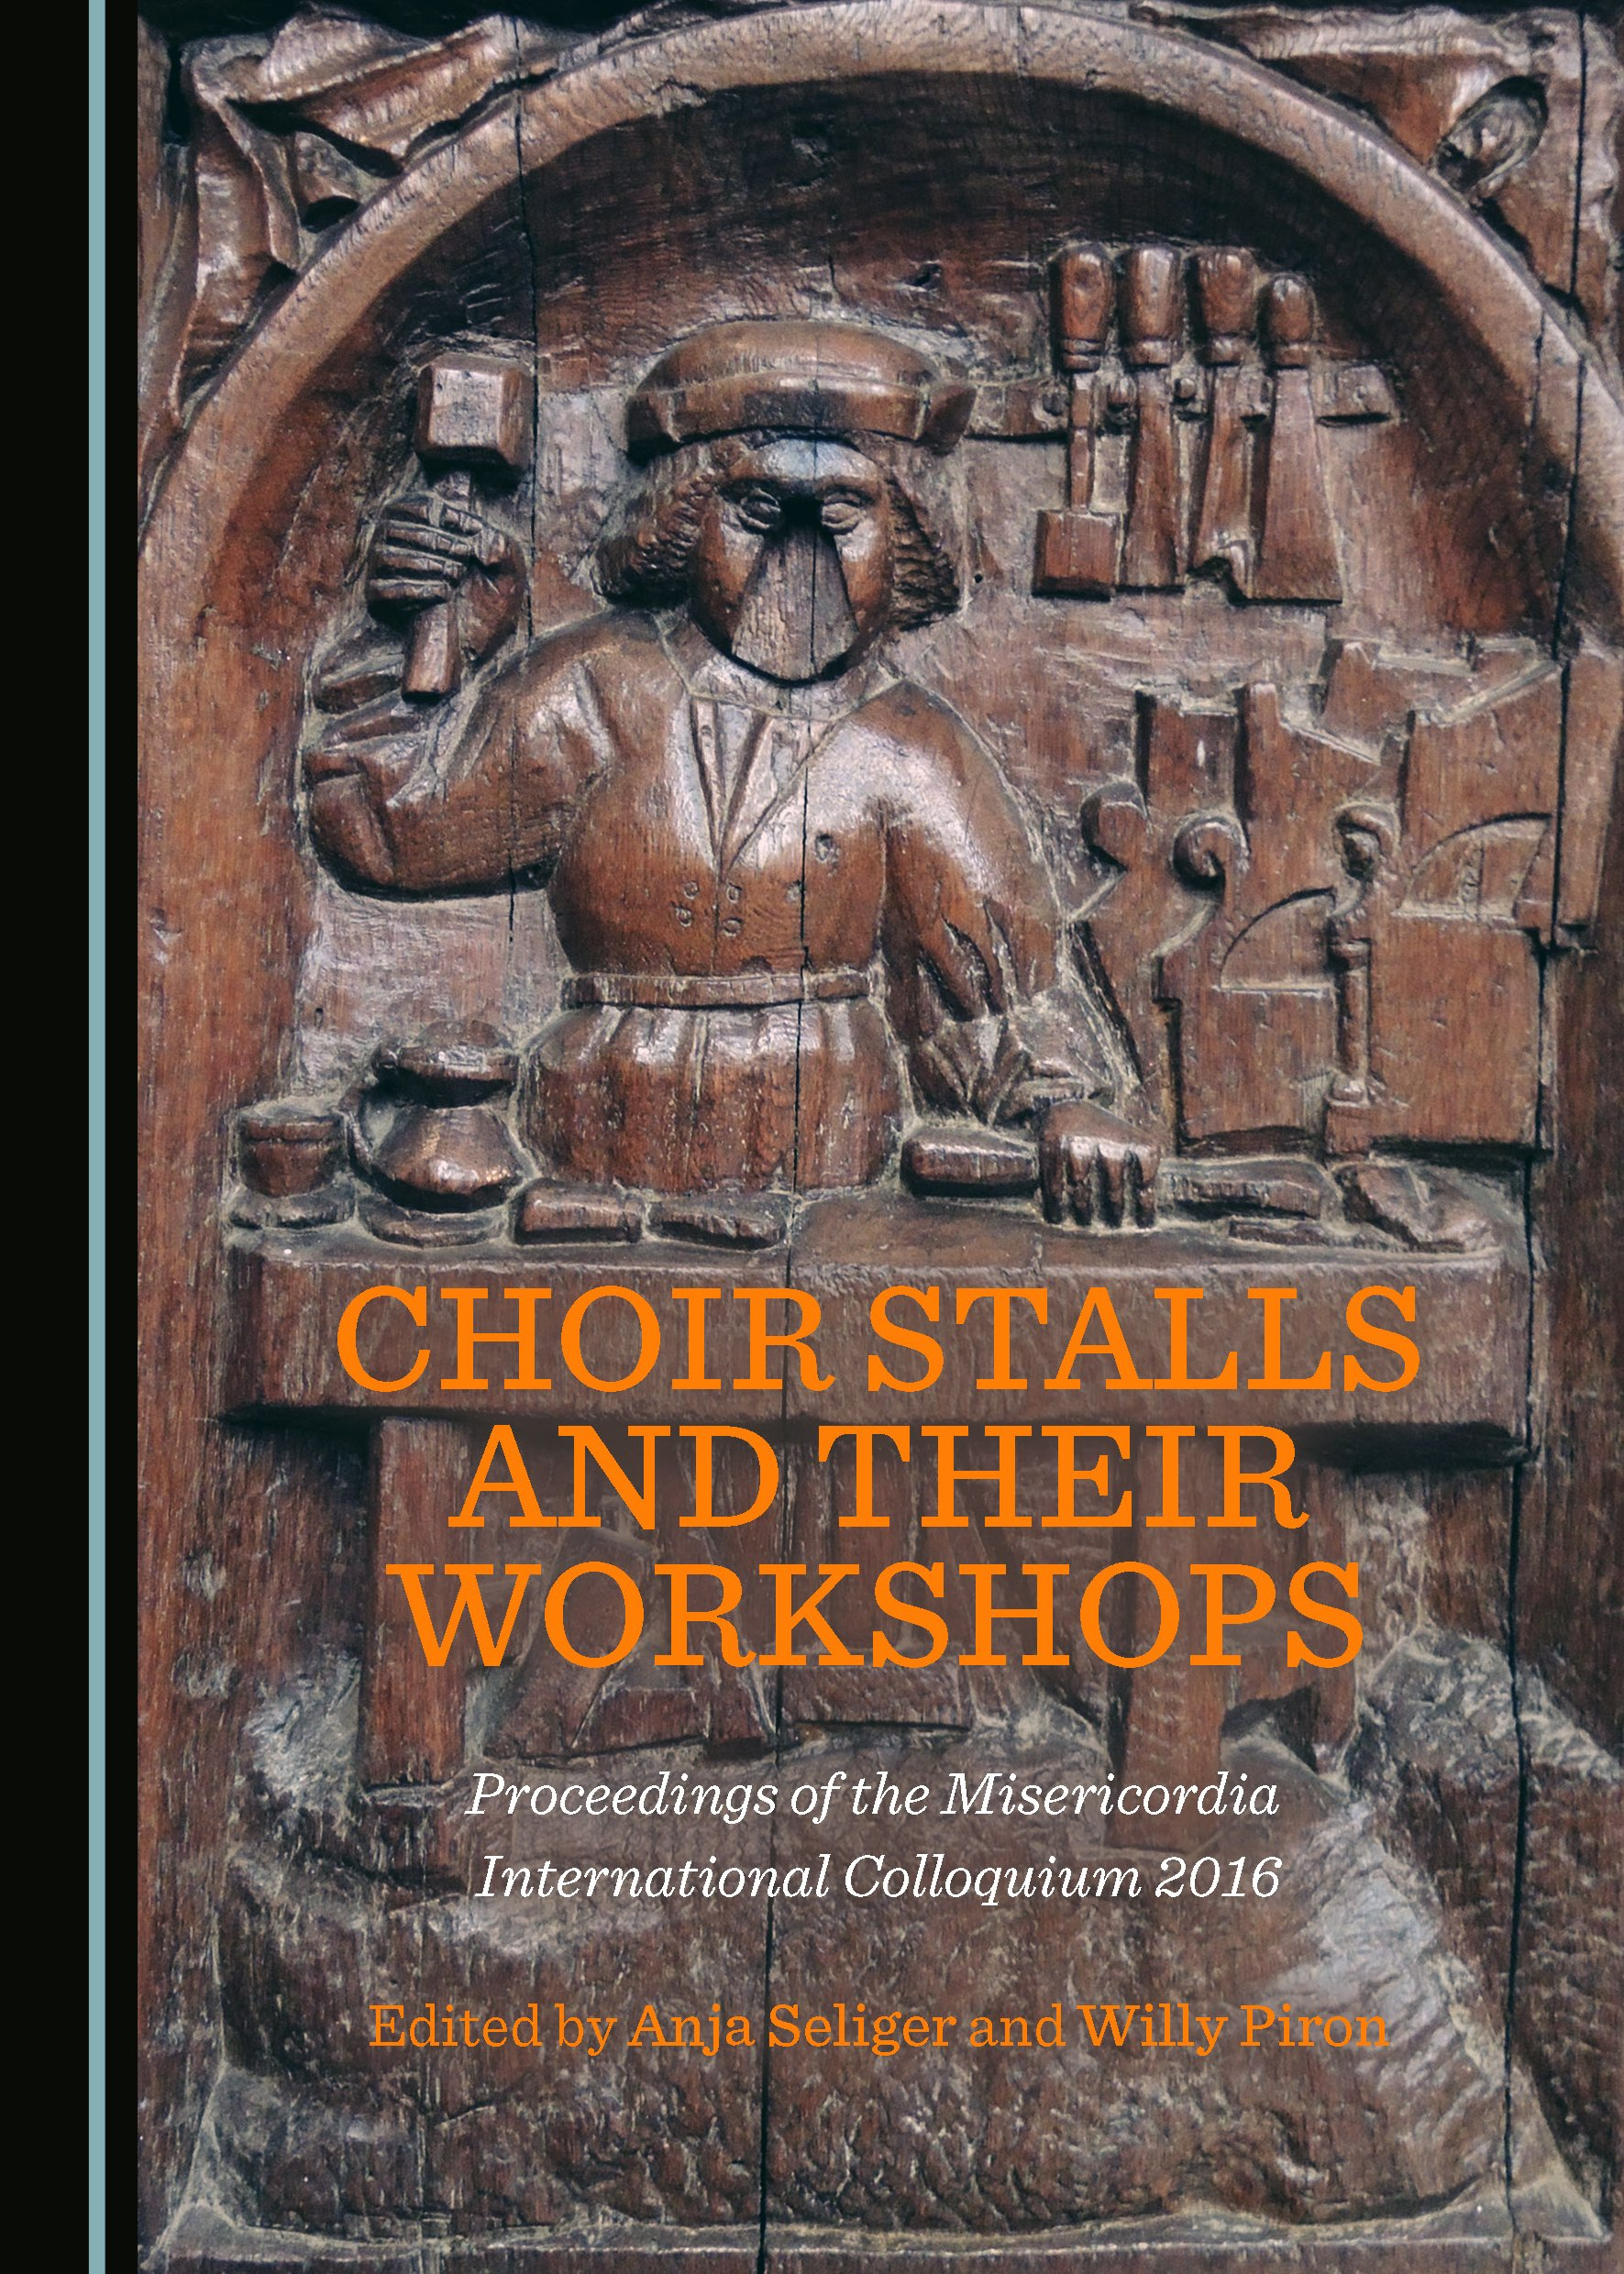 Choir Stalls and their Workshops: Proceedings of the Misericordia International Colloquium 2016